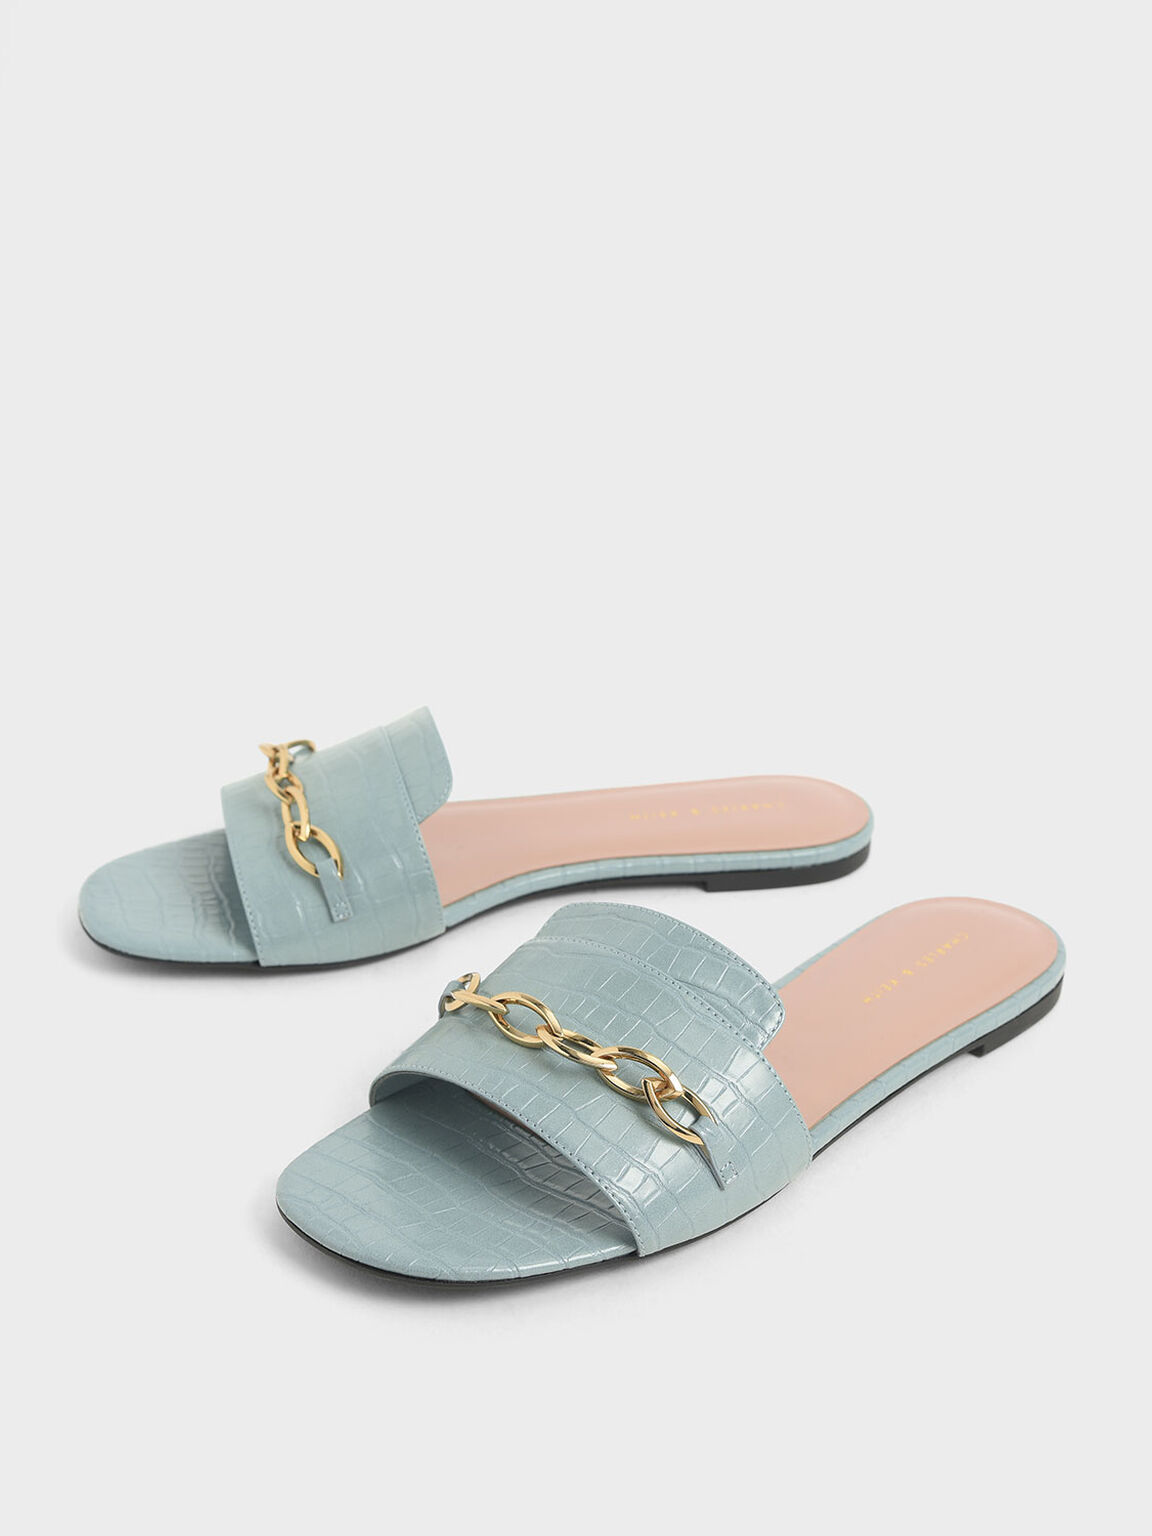 Croc-Effect Chain Link Slide Sandals, Blue, hi-res